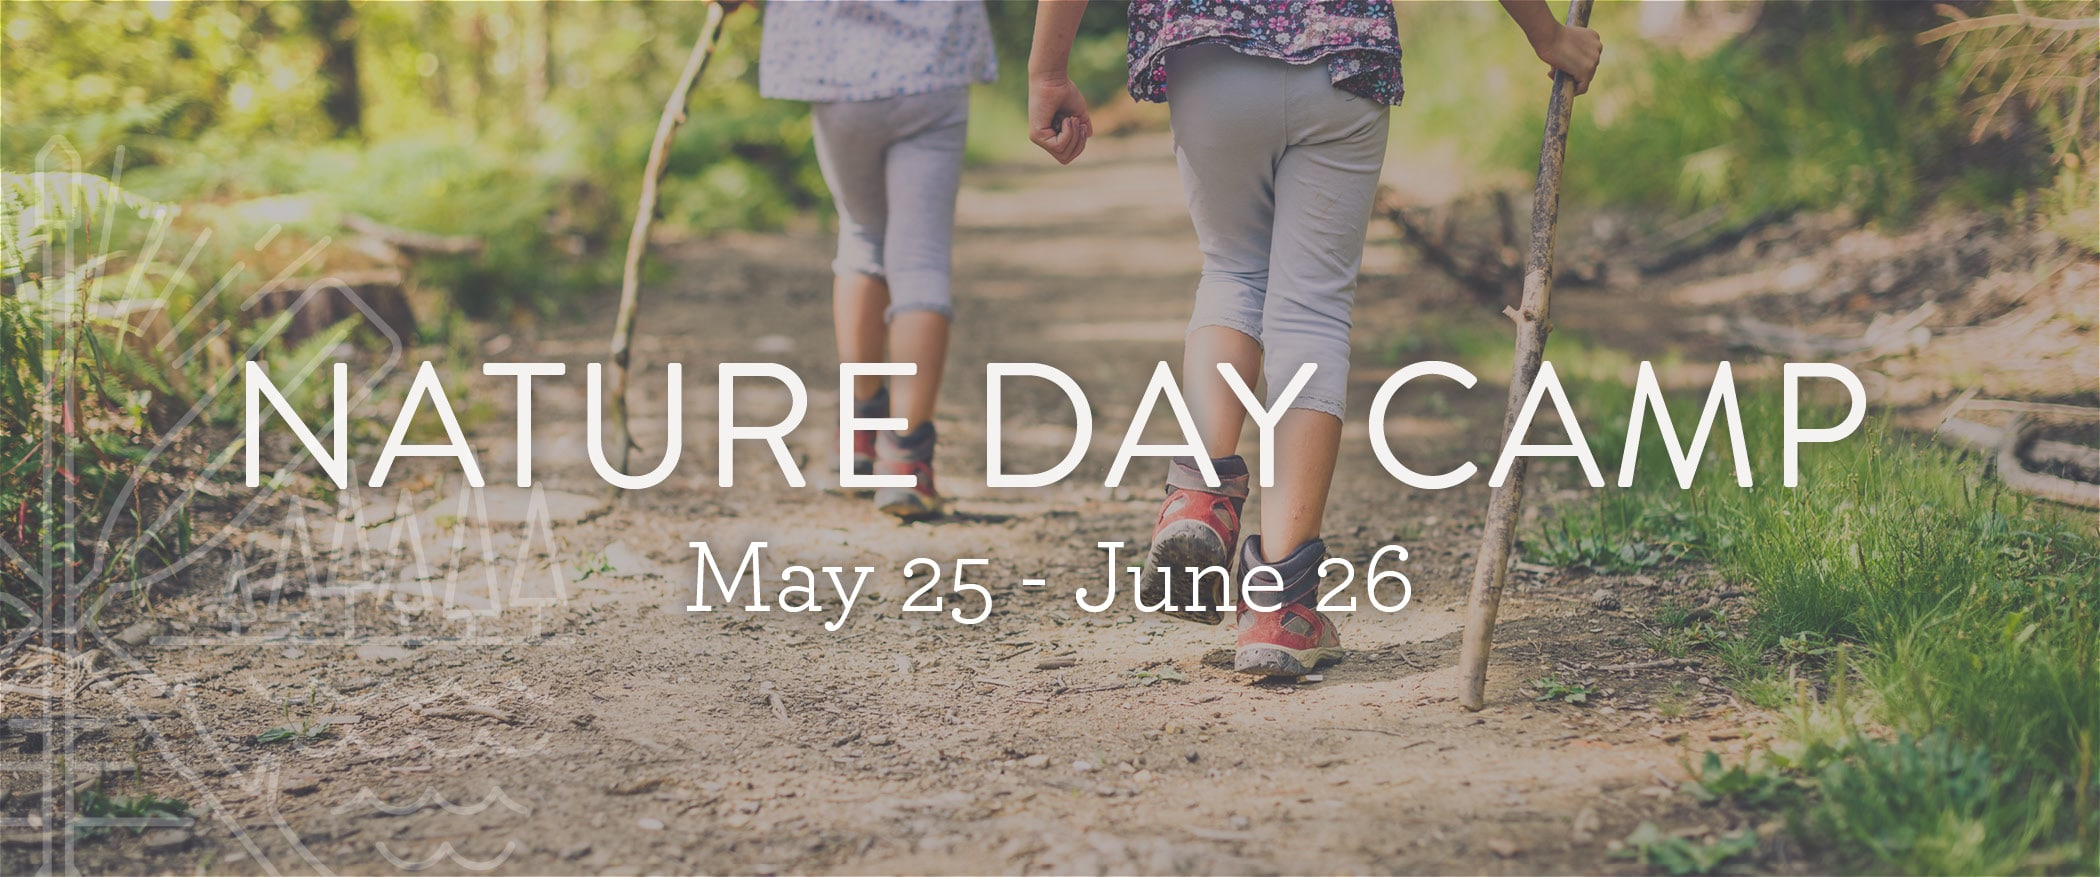 Nature Day Camp: May 25 - June 26